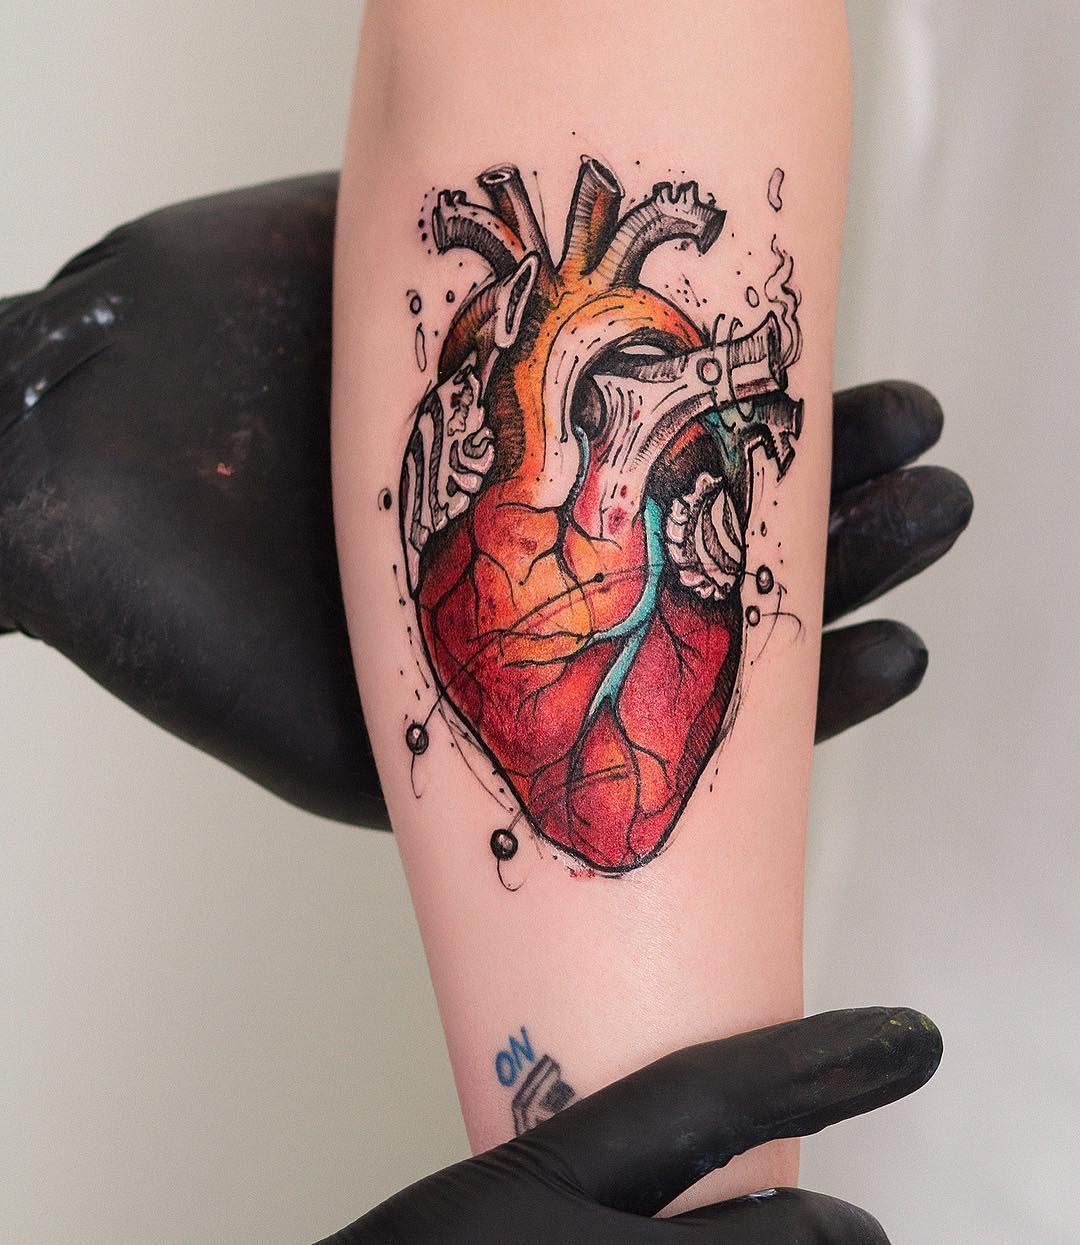 39 Inspiring Anatomical Heart Tattoos | Anatomical heart, Tattoo and ...